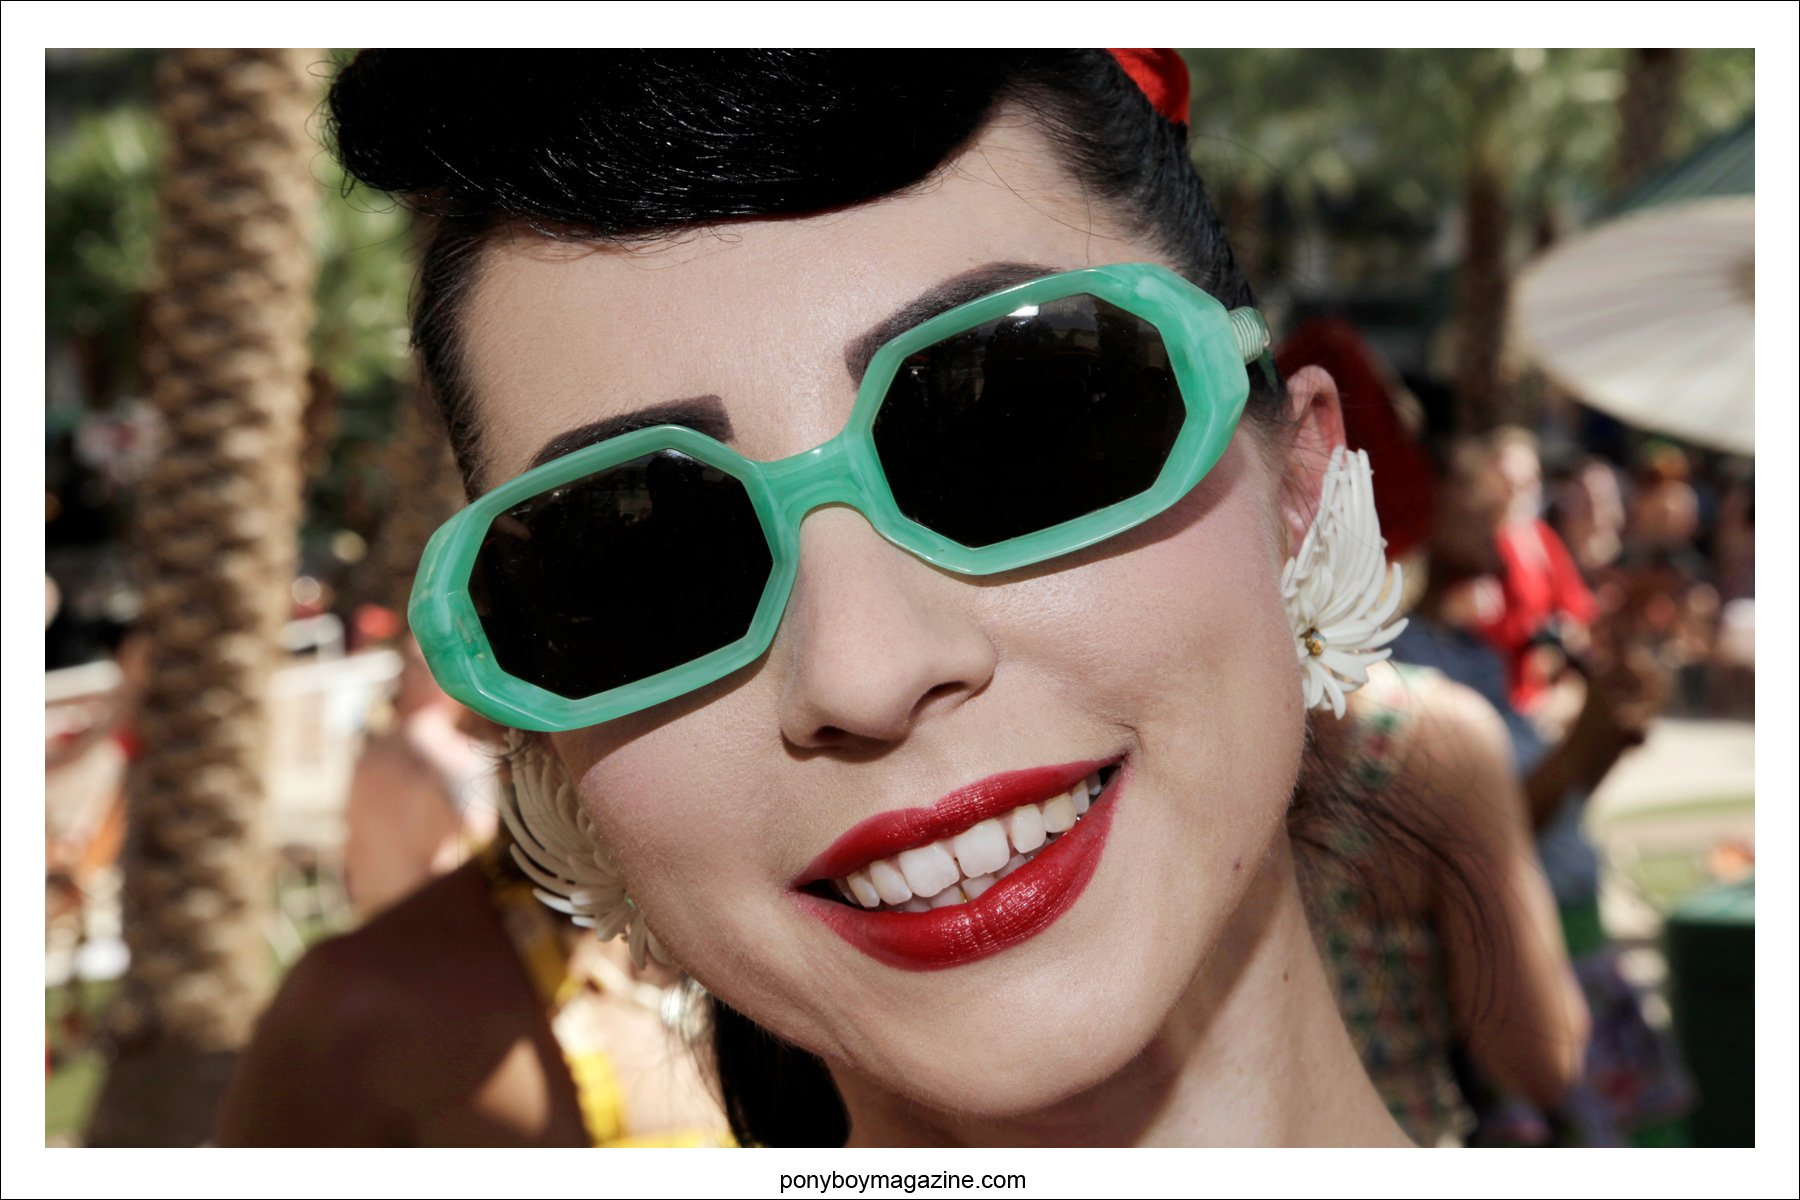 Vintage 1950's sunglasses photographed by Ponyboy Magazine photographer Alexander Thompson at Viva Las Vegas pool party.